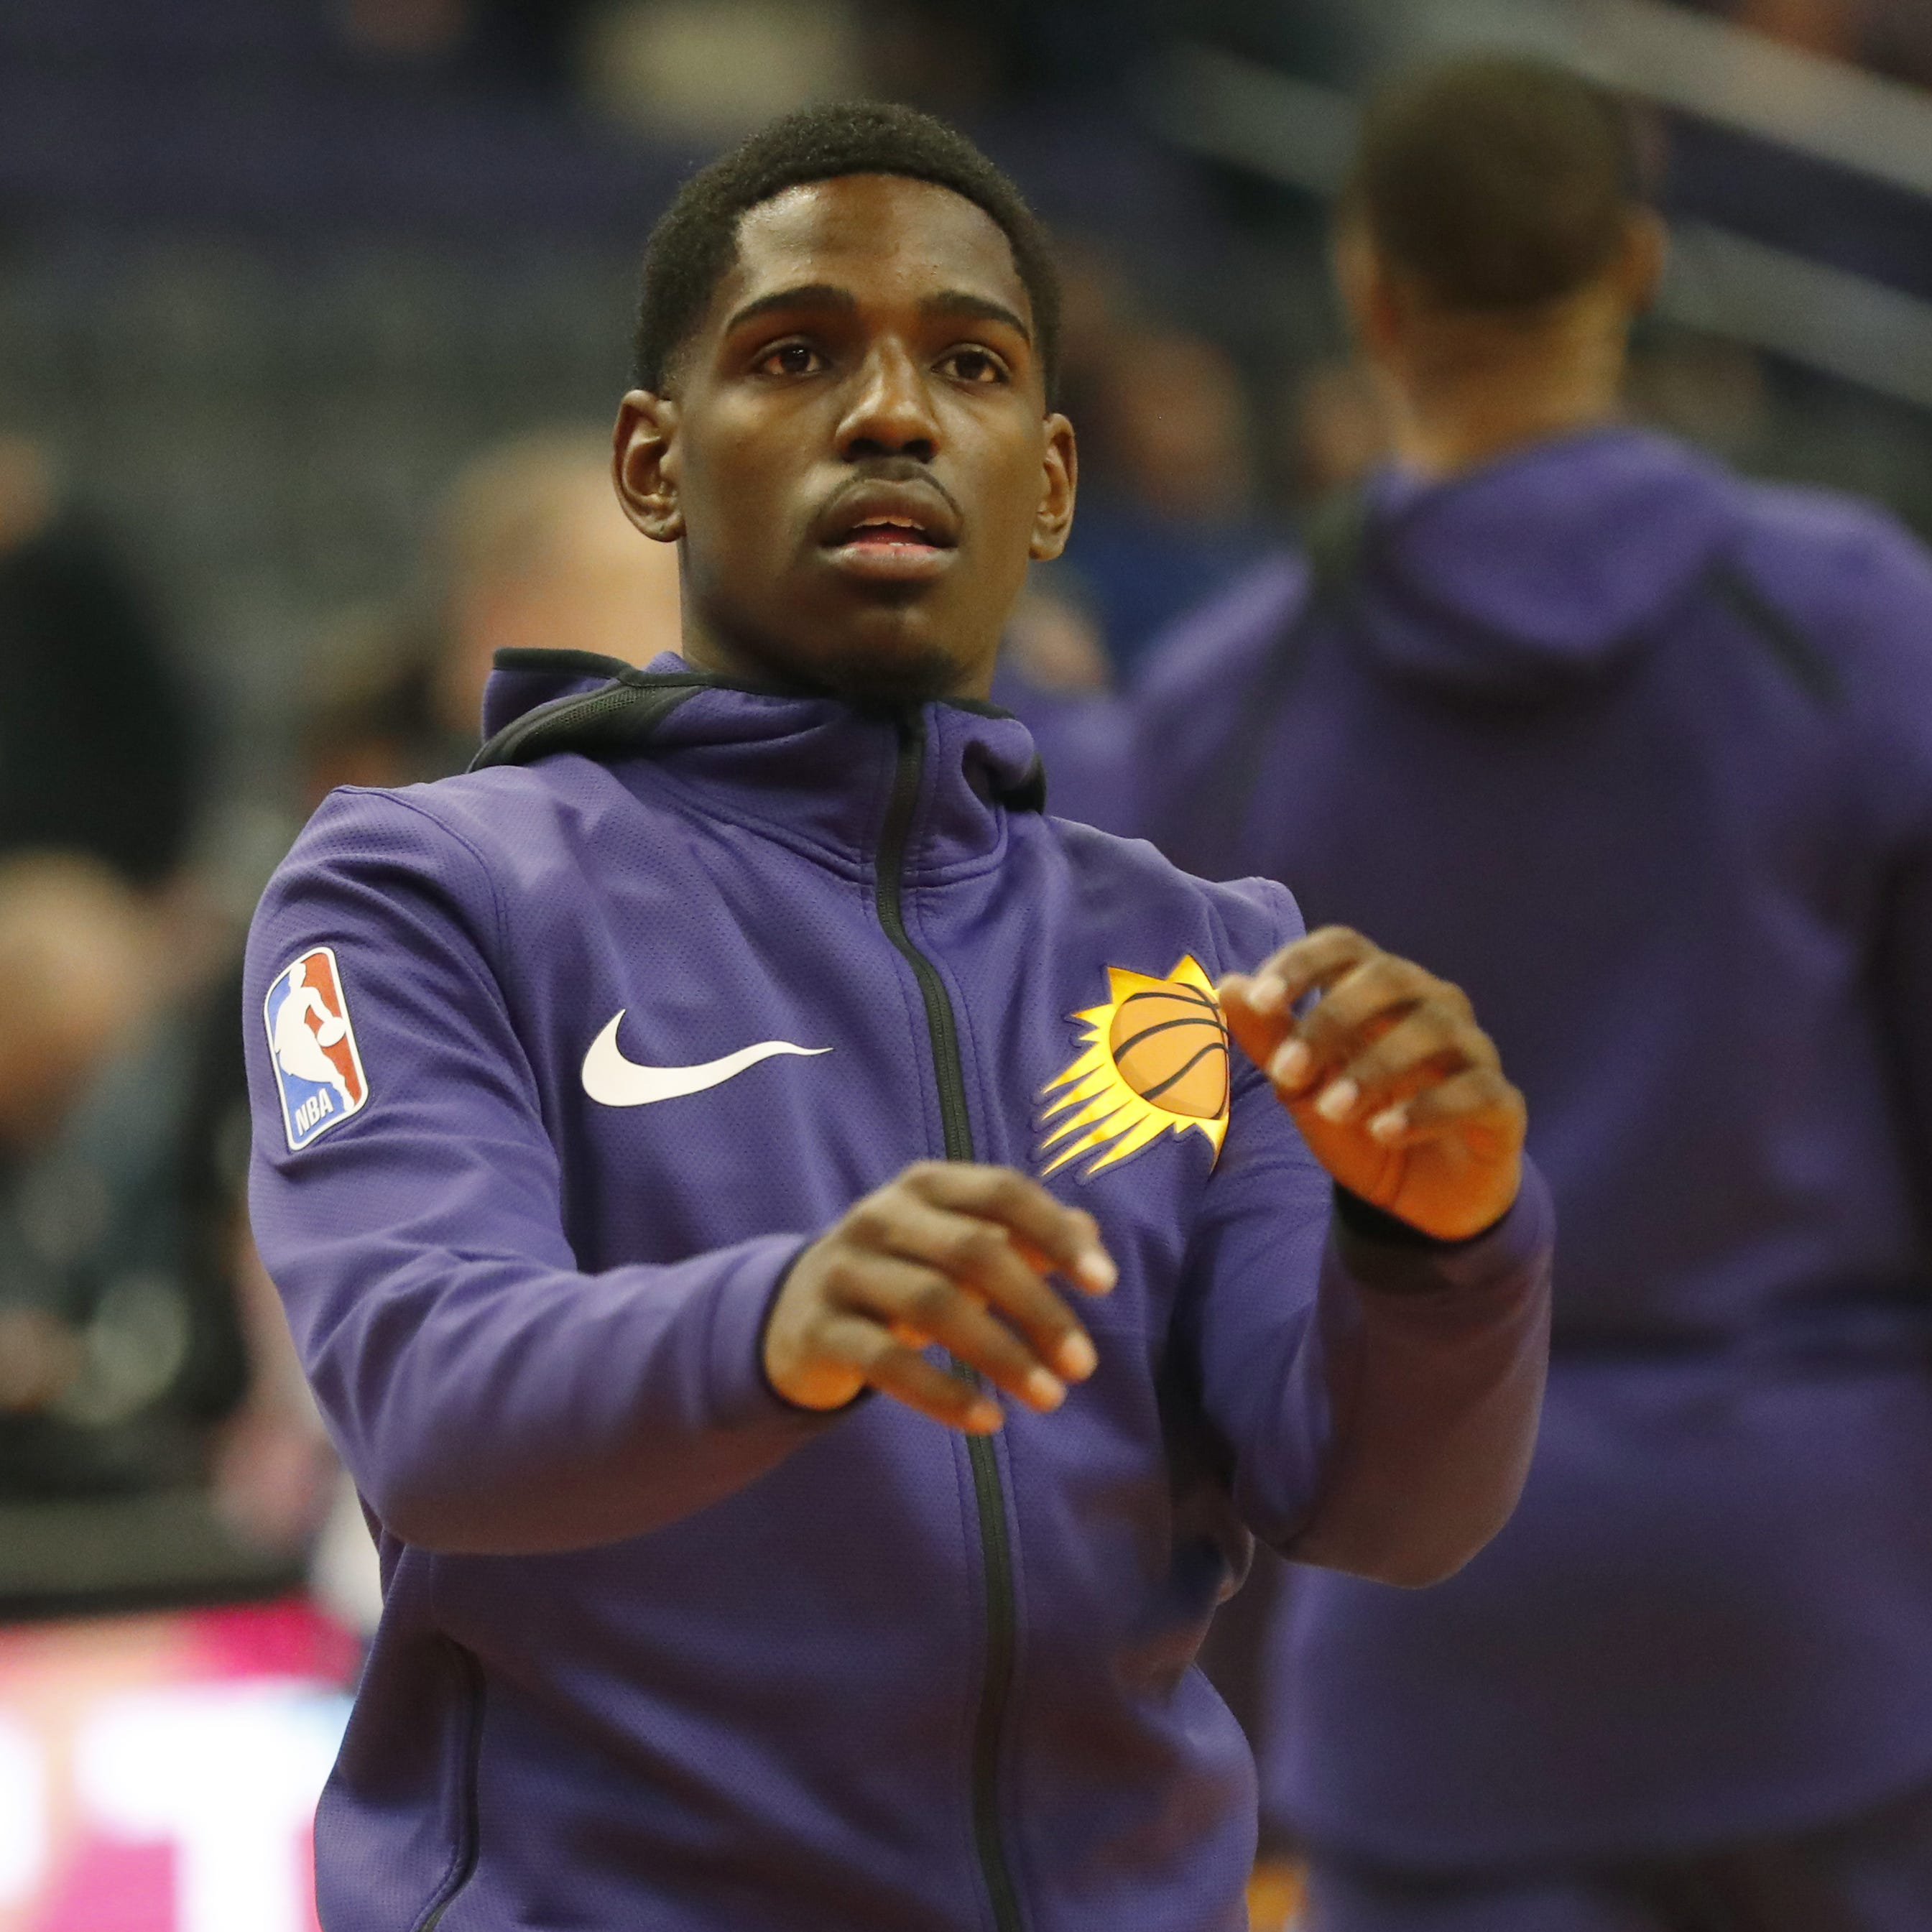 Two-way player Jawun Evans gives the Phoenix Suns 'true point guard'